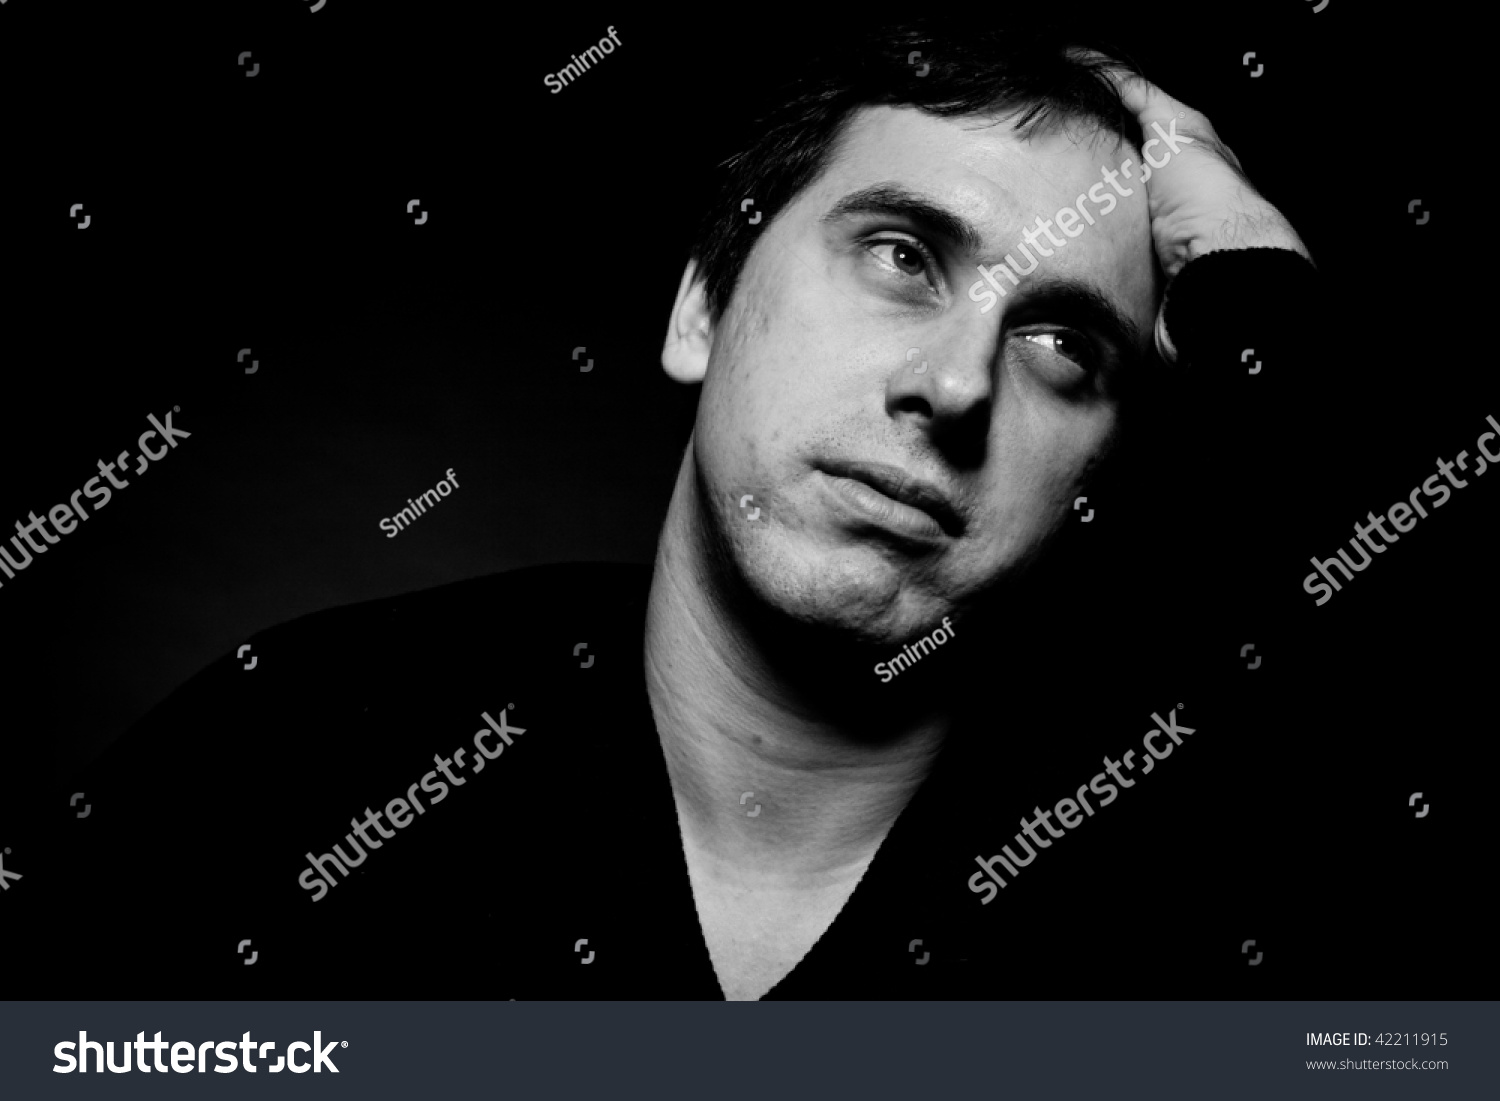 black background young caucasian man staring serious close